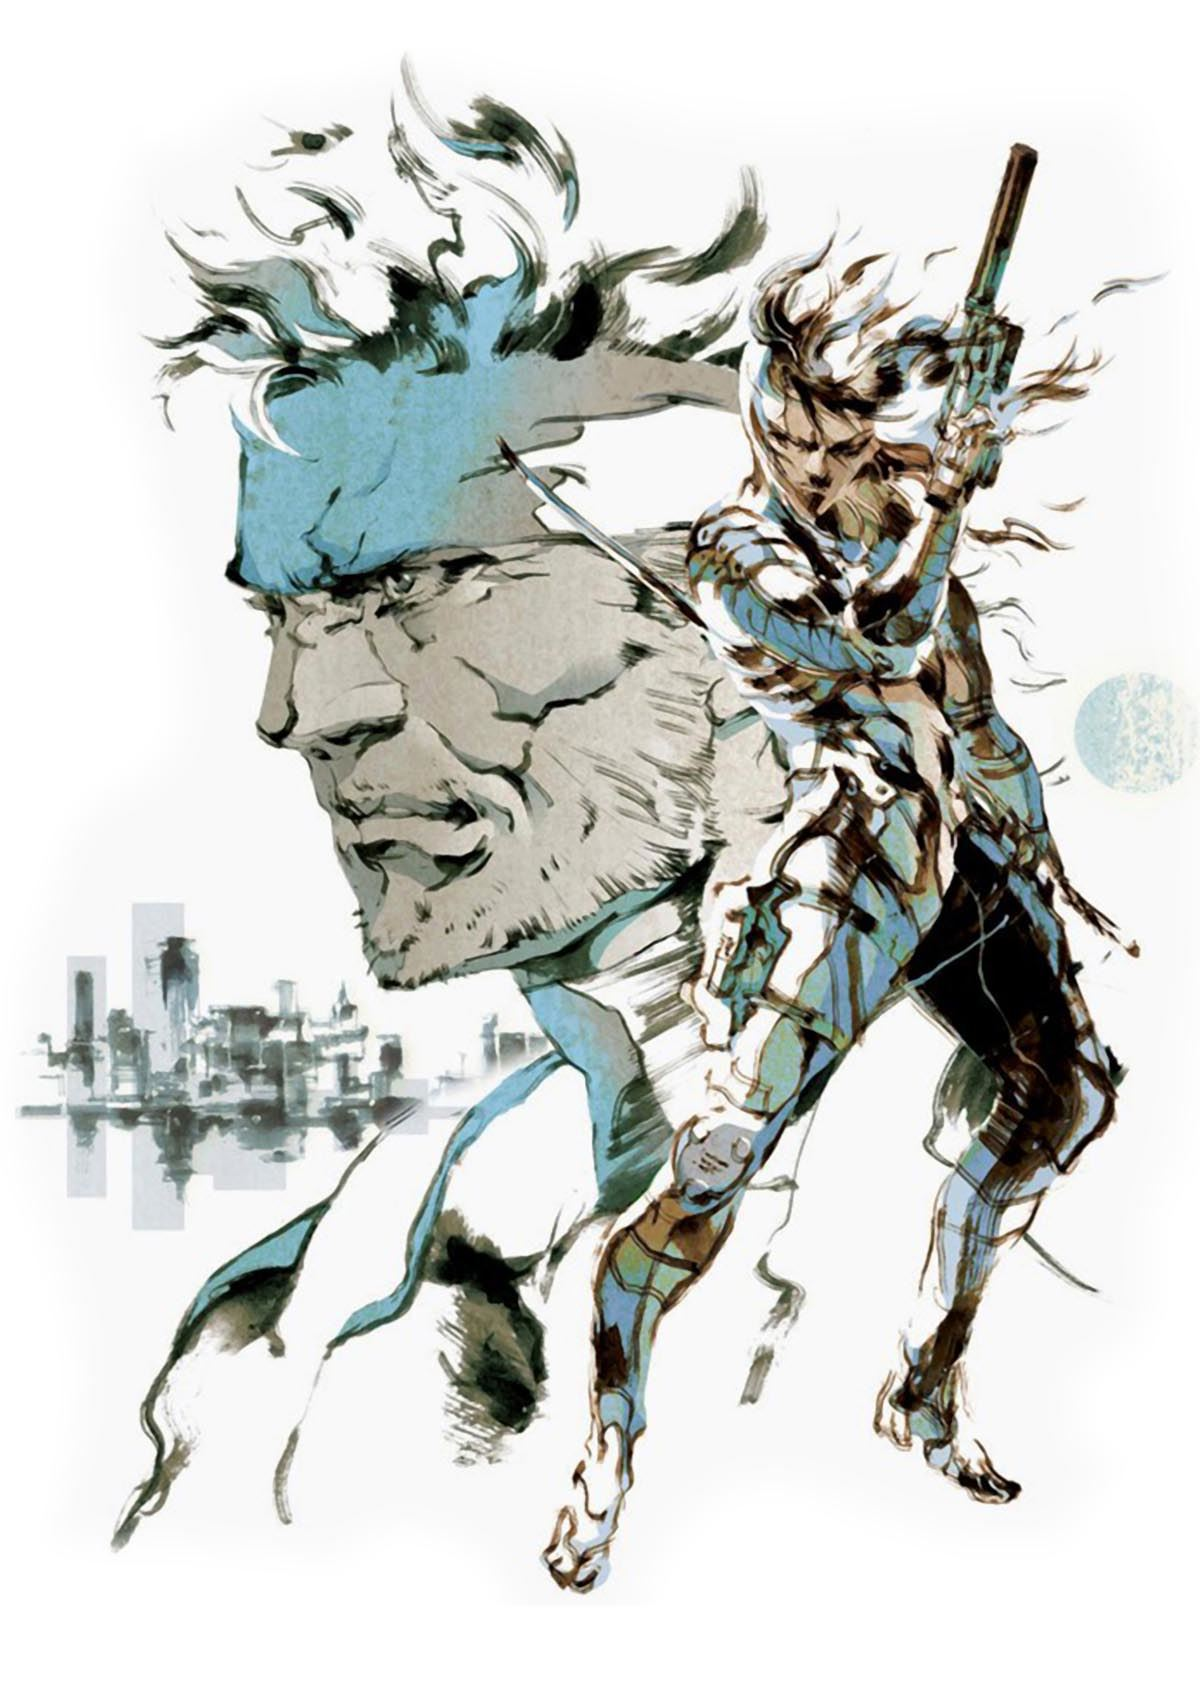 Details About Metal Gear Solid Snake A3 Art Print Poster Yf5346